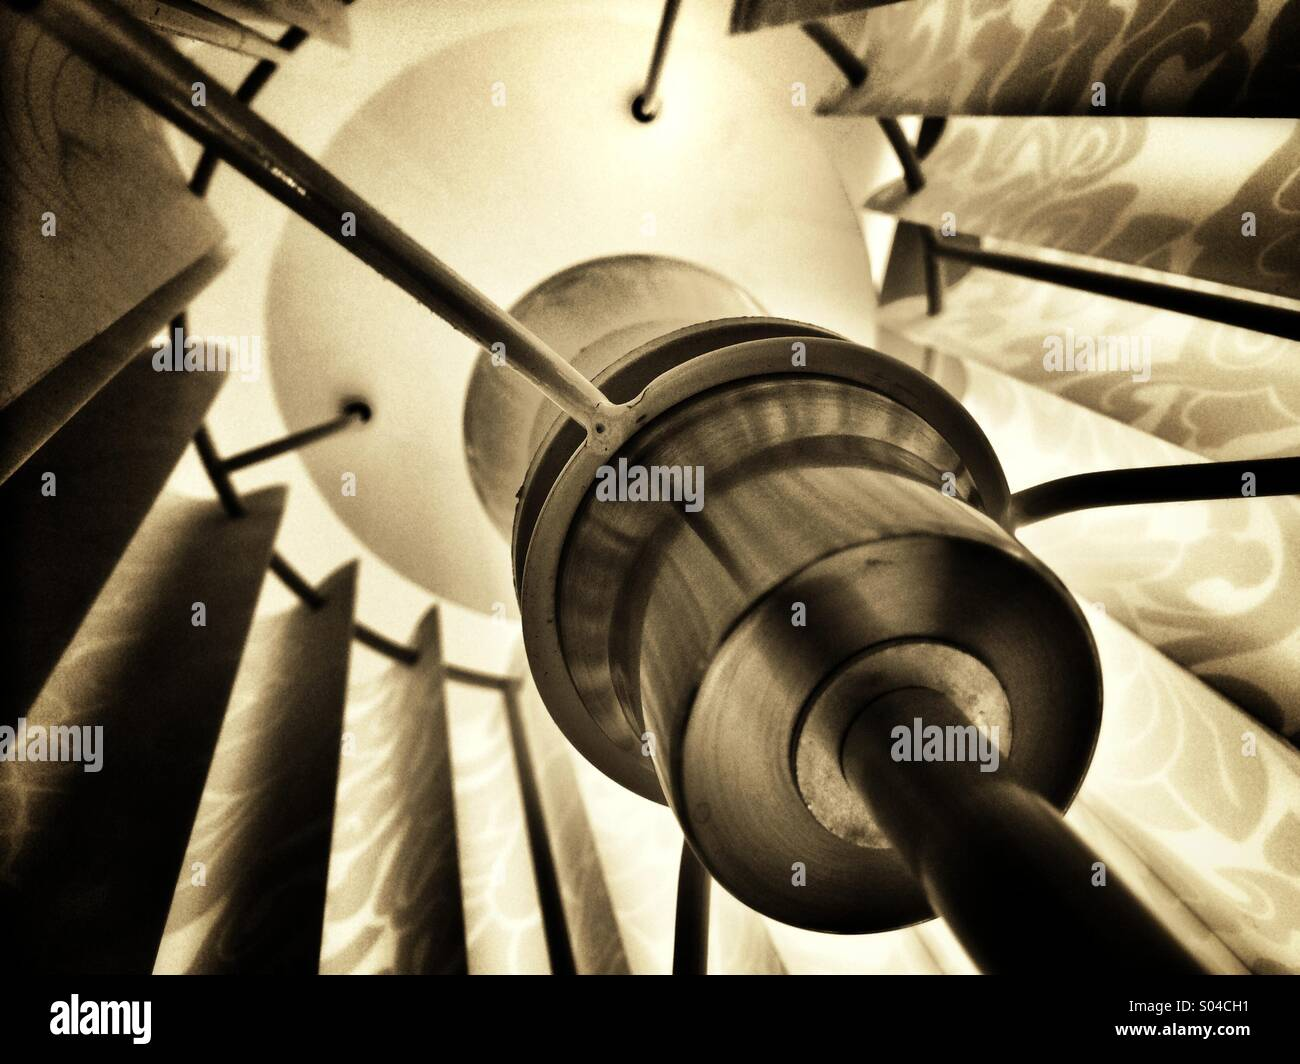 View inside a lampshade - Stock Image